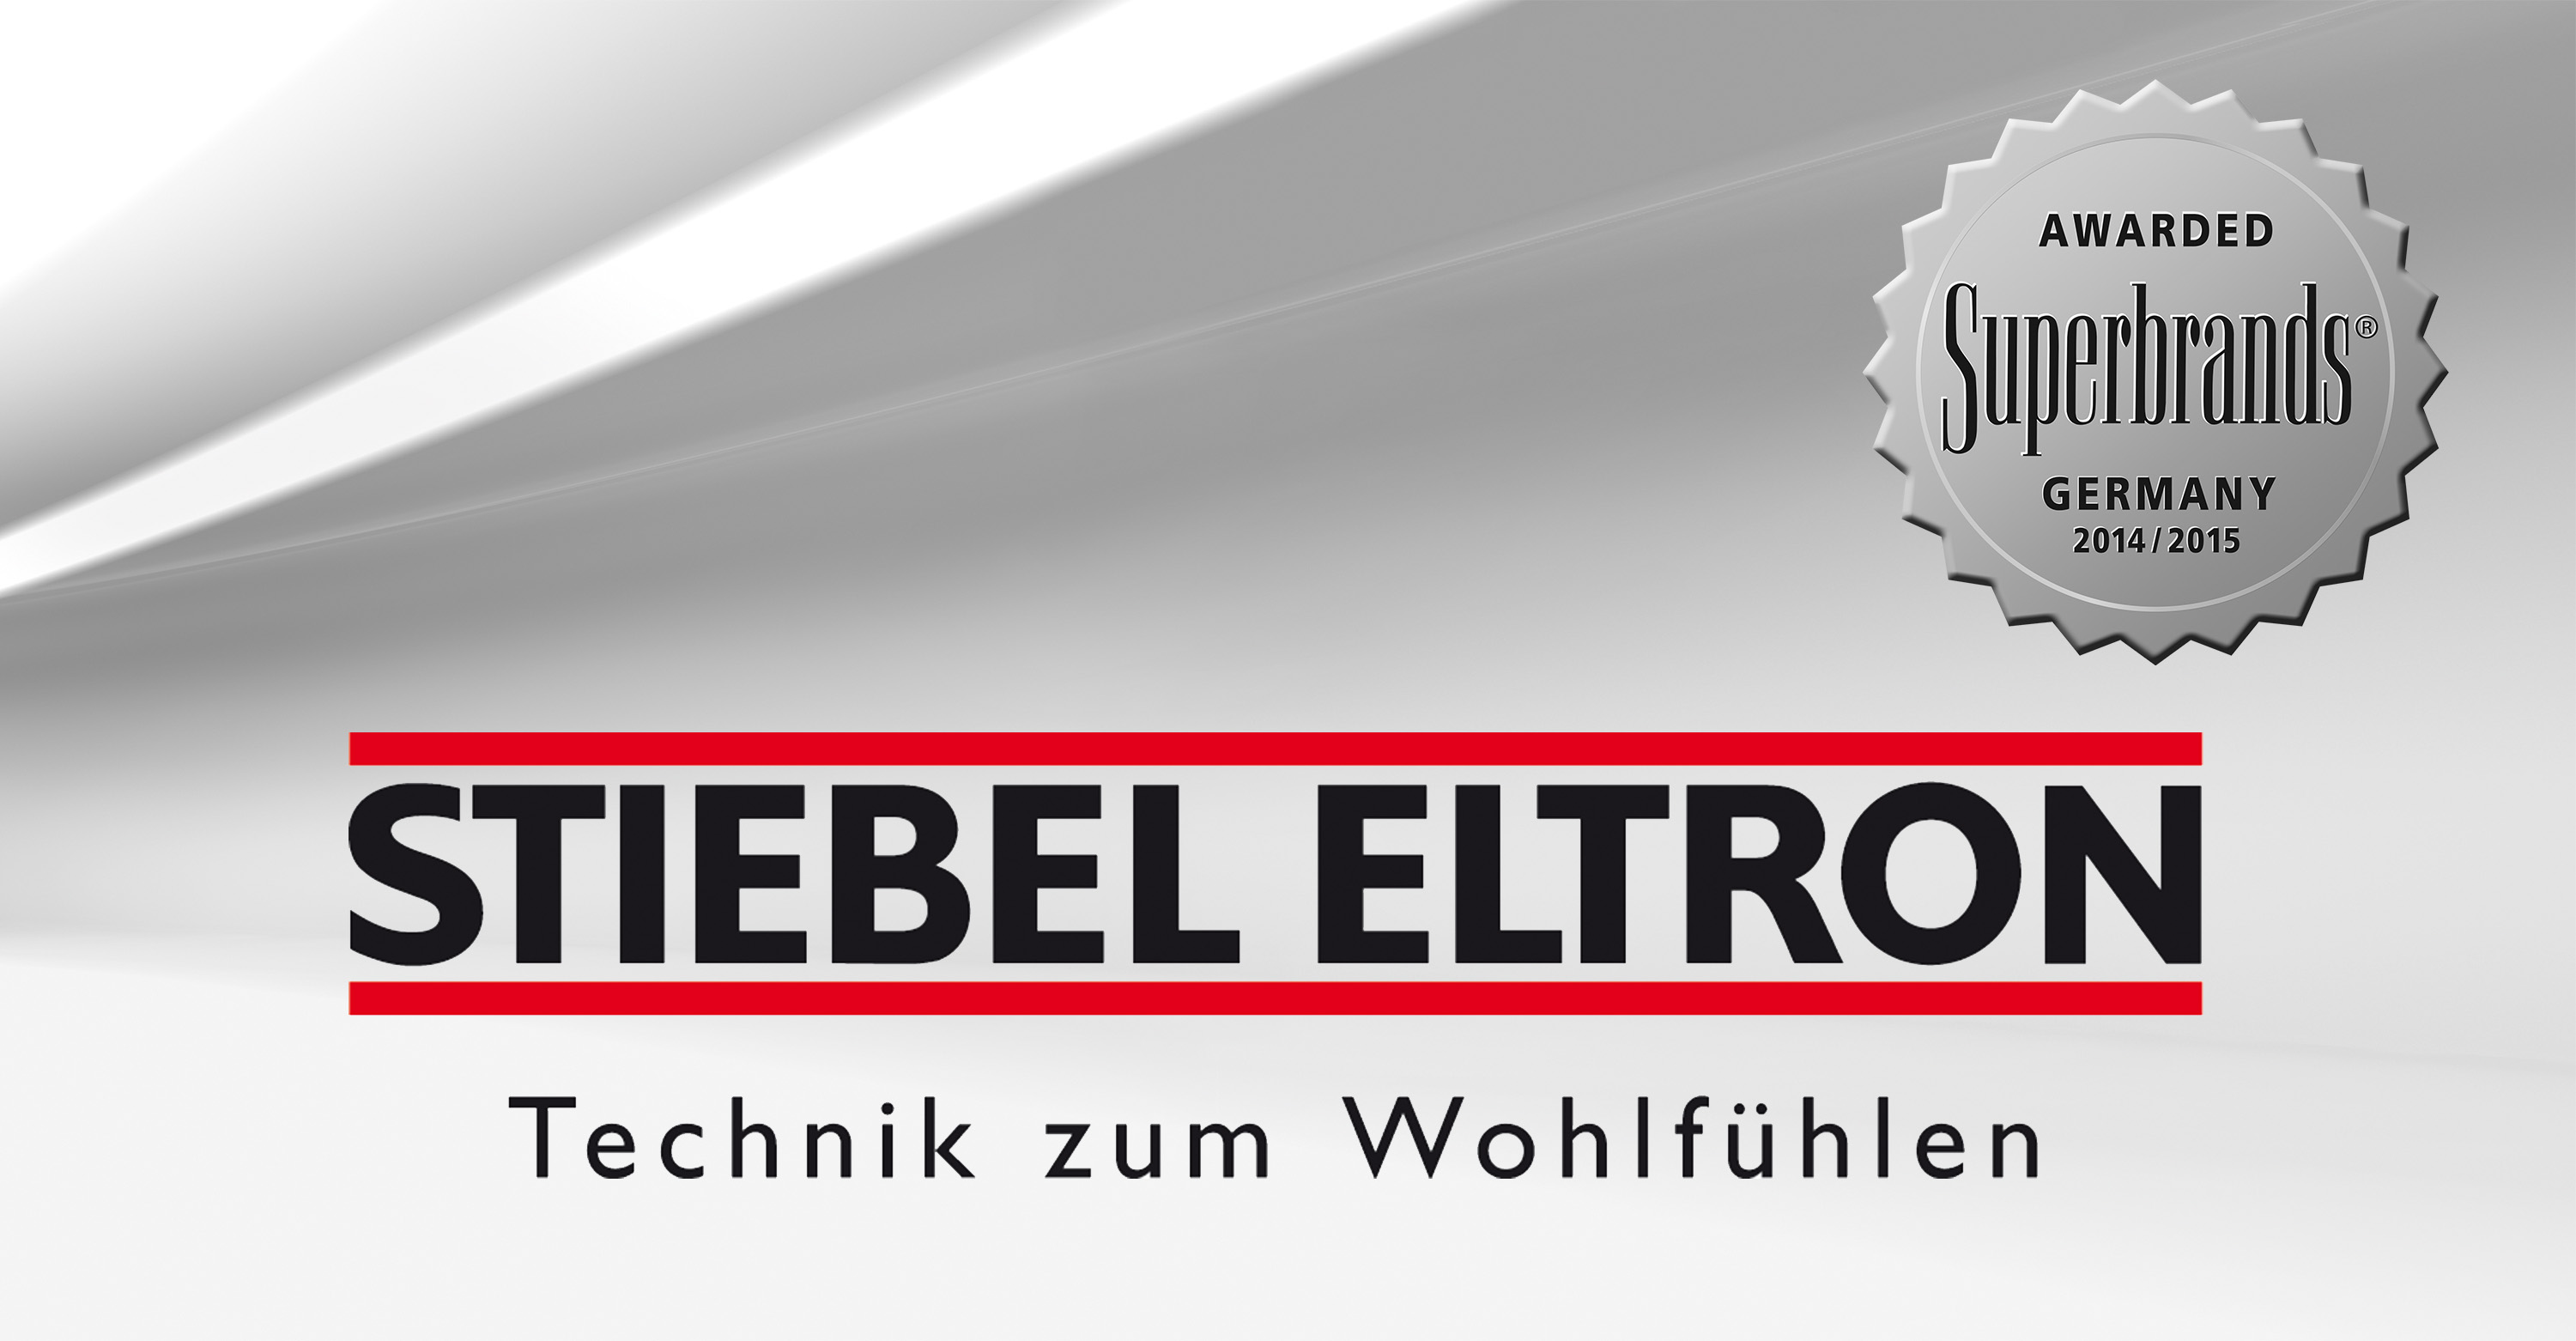 stiebel eltron erneut superbrand stiebel eltron. Black Bedroom Furniture Sets. Home Design Ideas